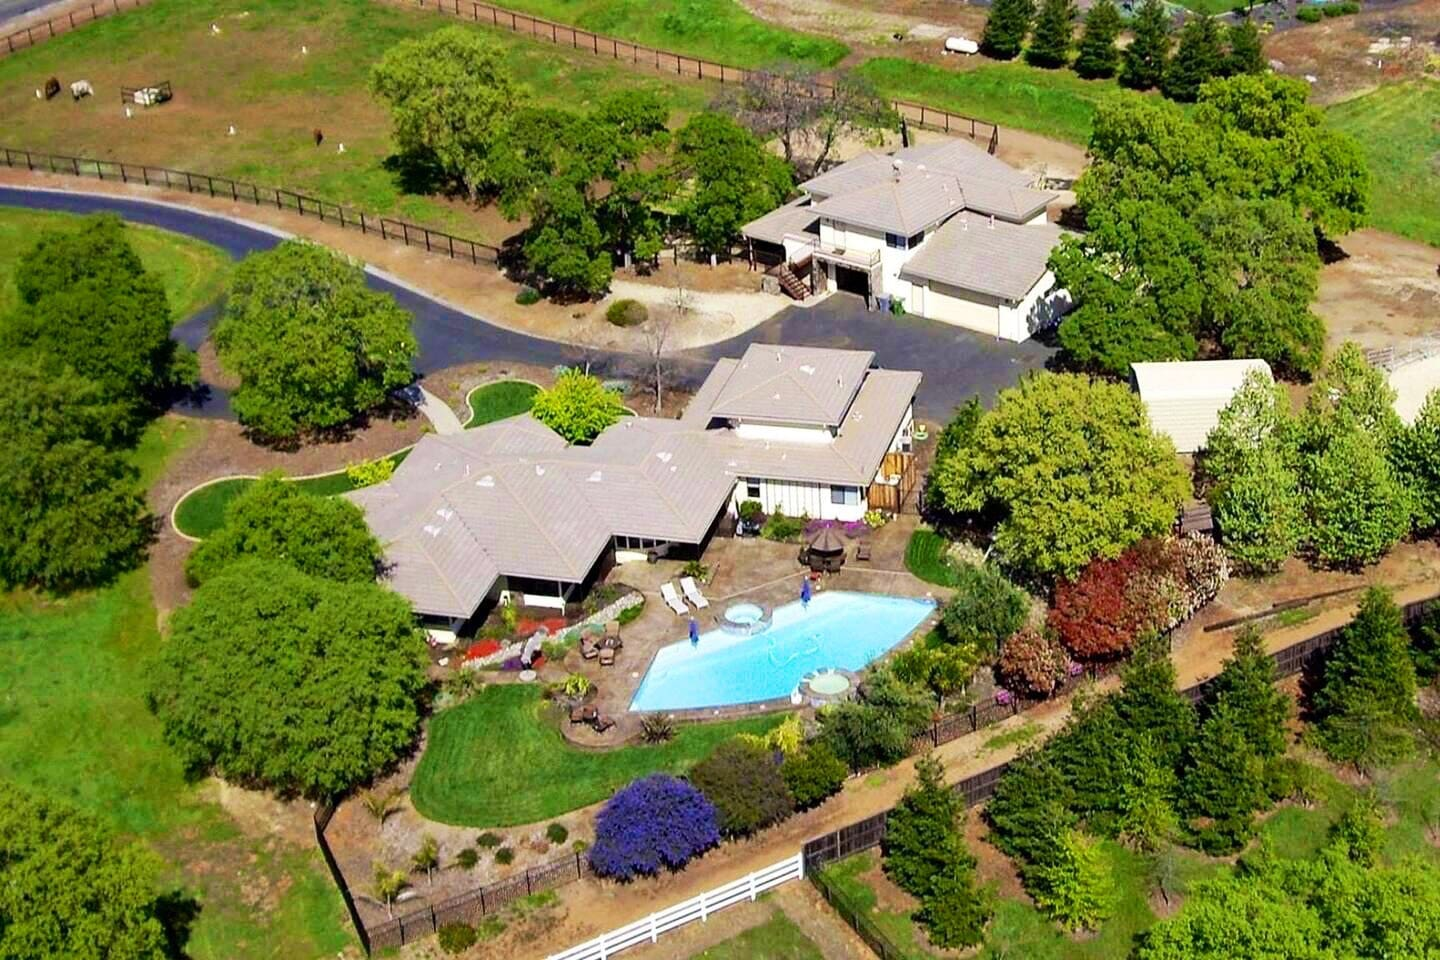 Aerial view of main house, guest house and swimming pool